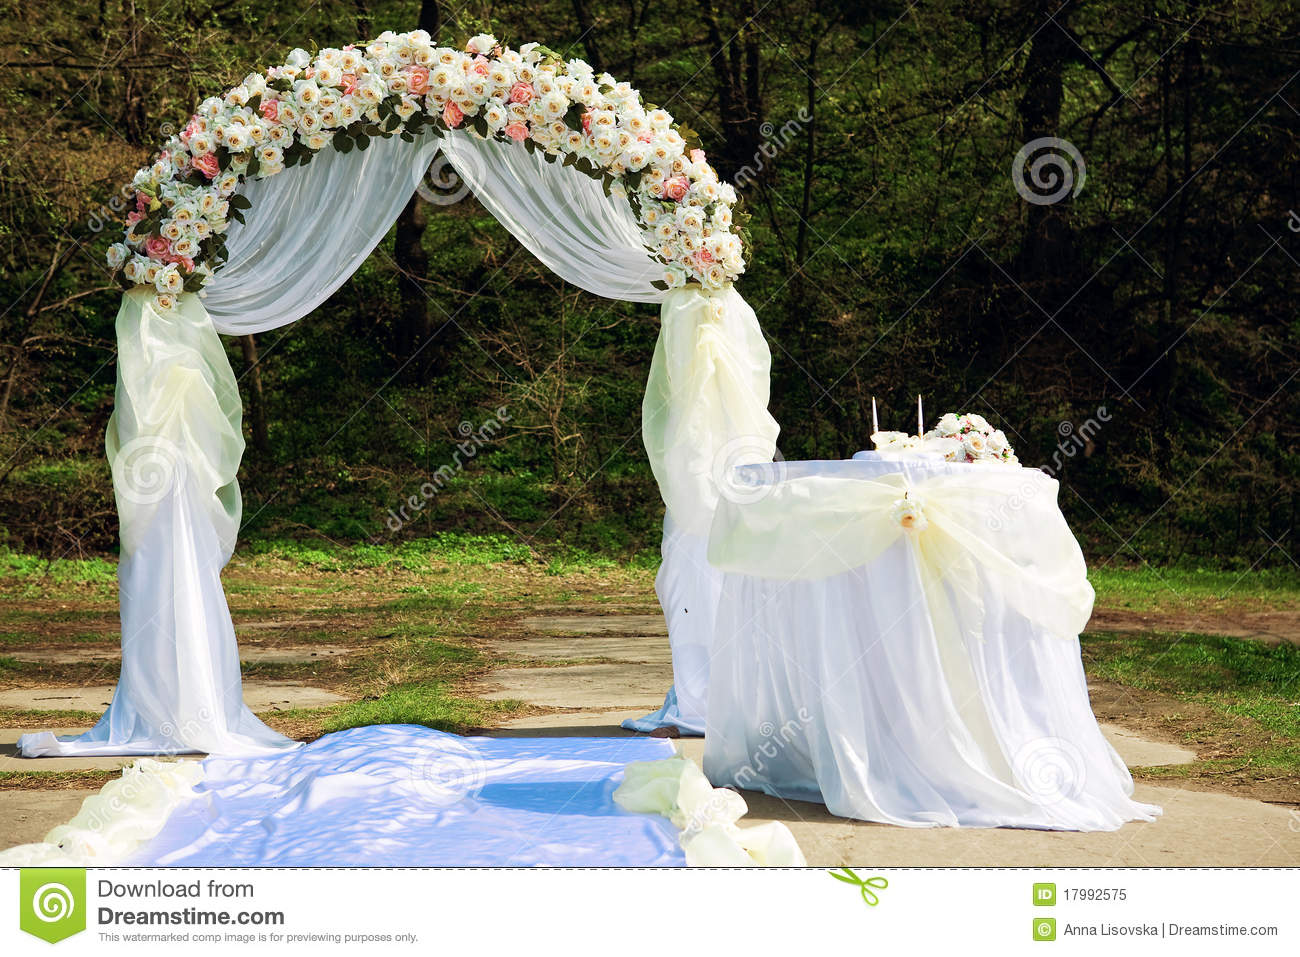 Wedding Arch Royalty Free Stock Photo Image 17992575